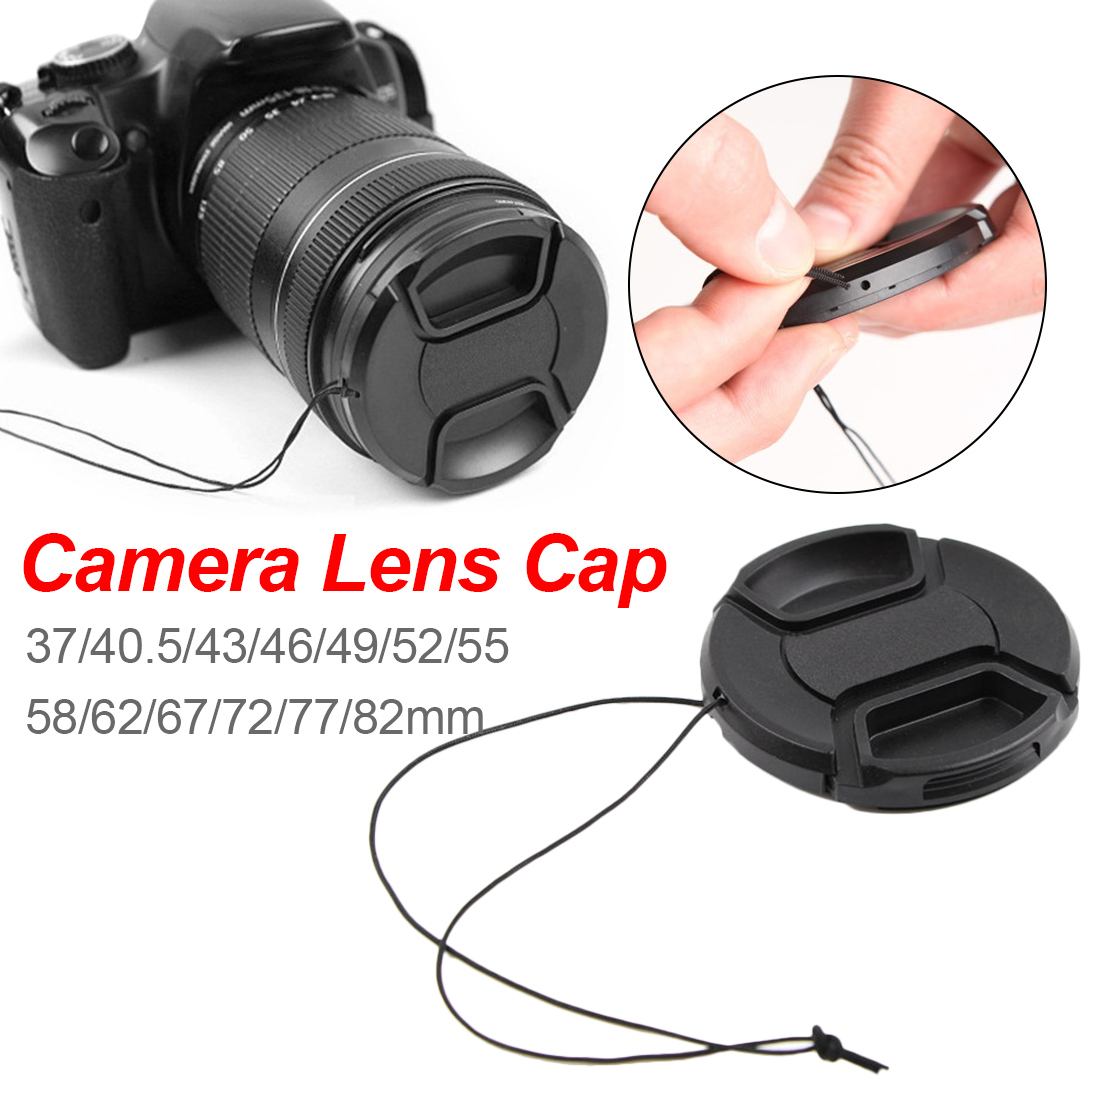 Universal Camera <font><b>Lens</b></font> <font><b>Cap</b></font> <font><b>67</b></font>/72/77/82mm Different Size <font><b>Lens</b></font> Protection Cover With Anti-lost Rope For Canon Sony Nikon DSLR SLR image